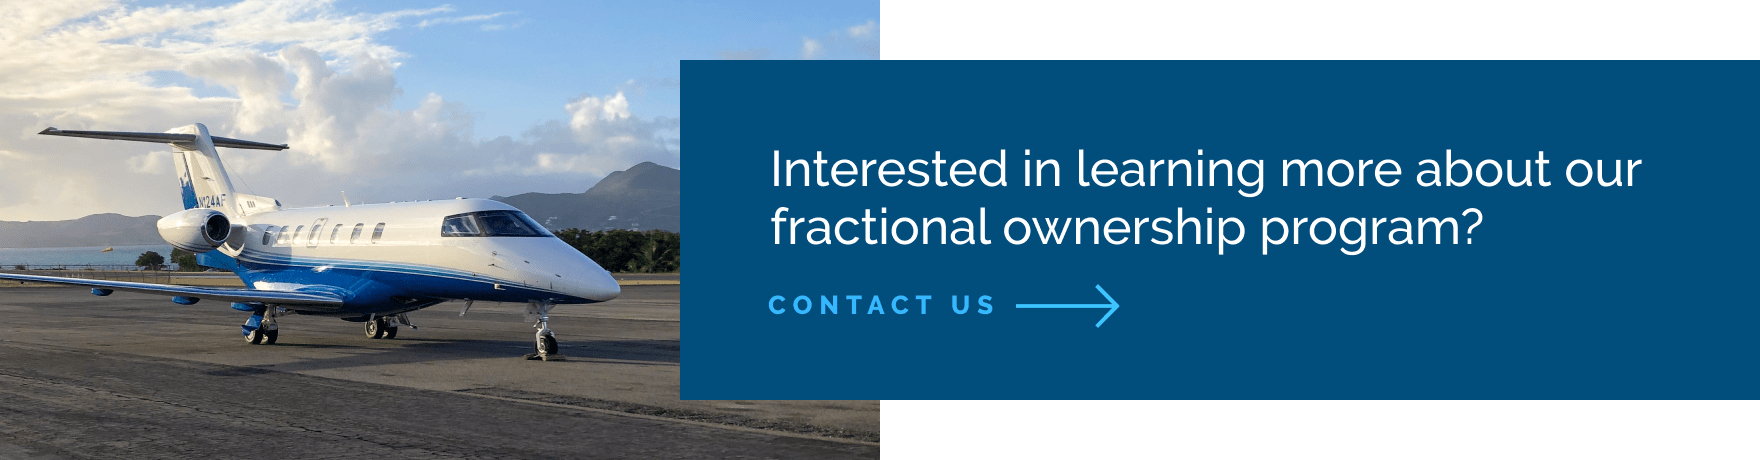 Fractional Jet Ownership Contact Page